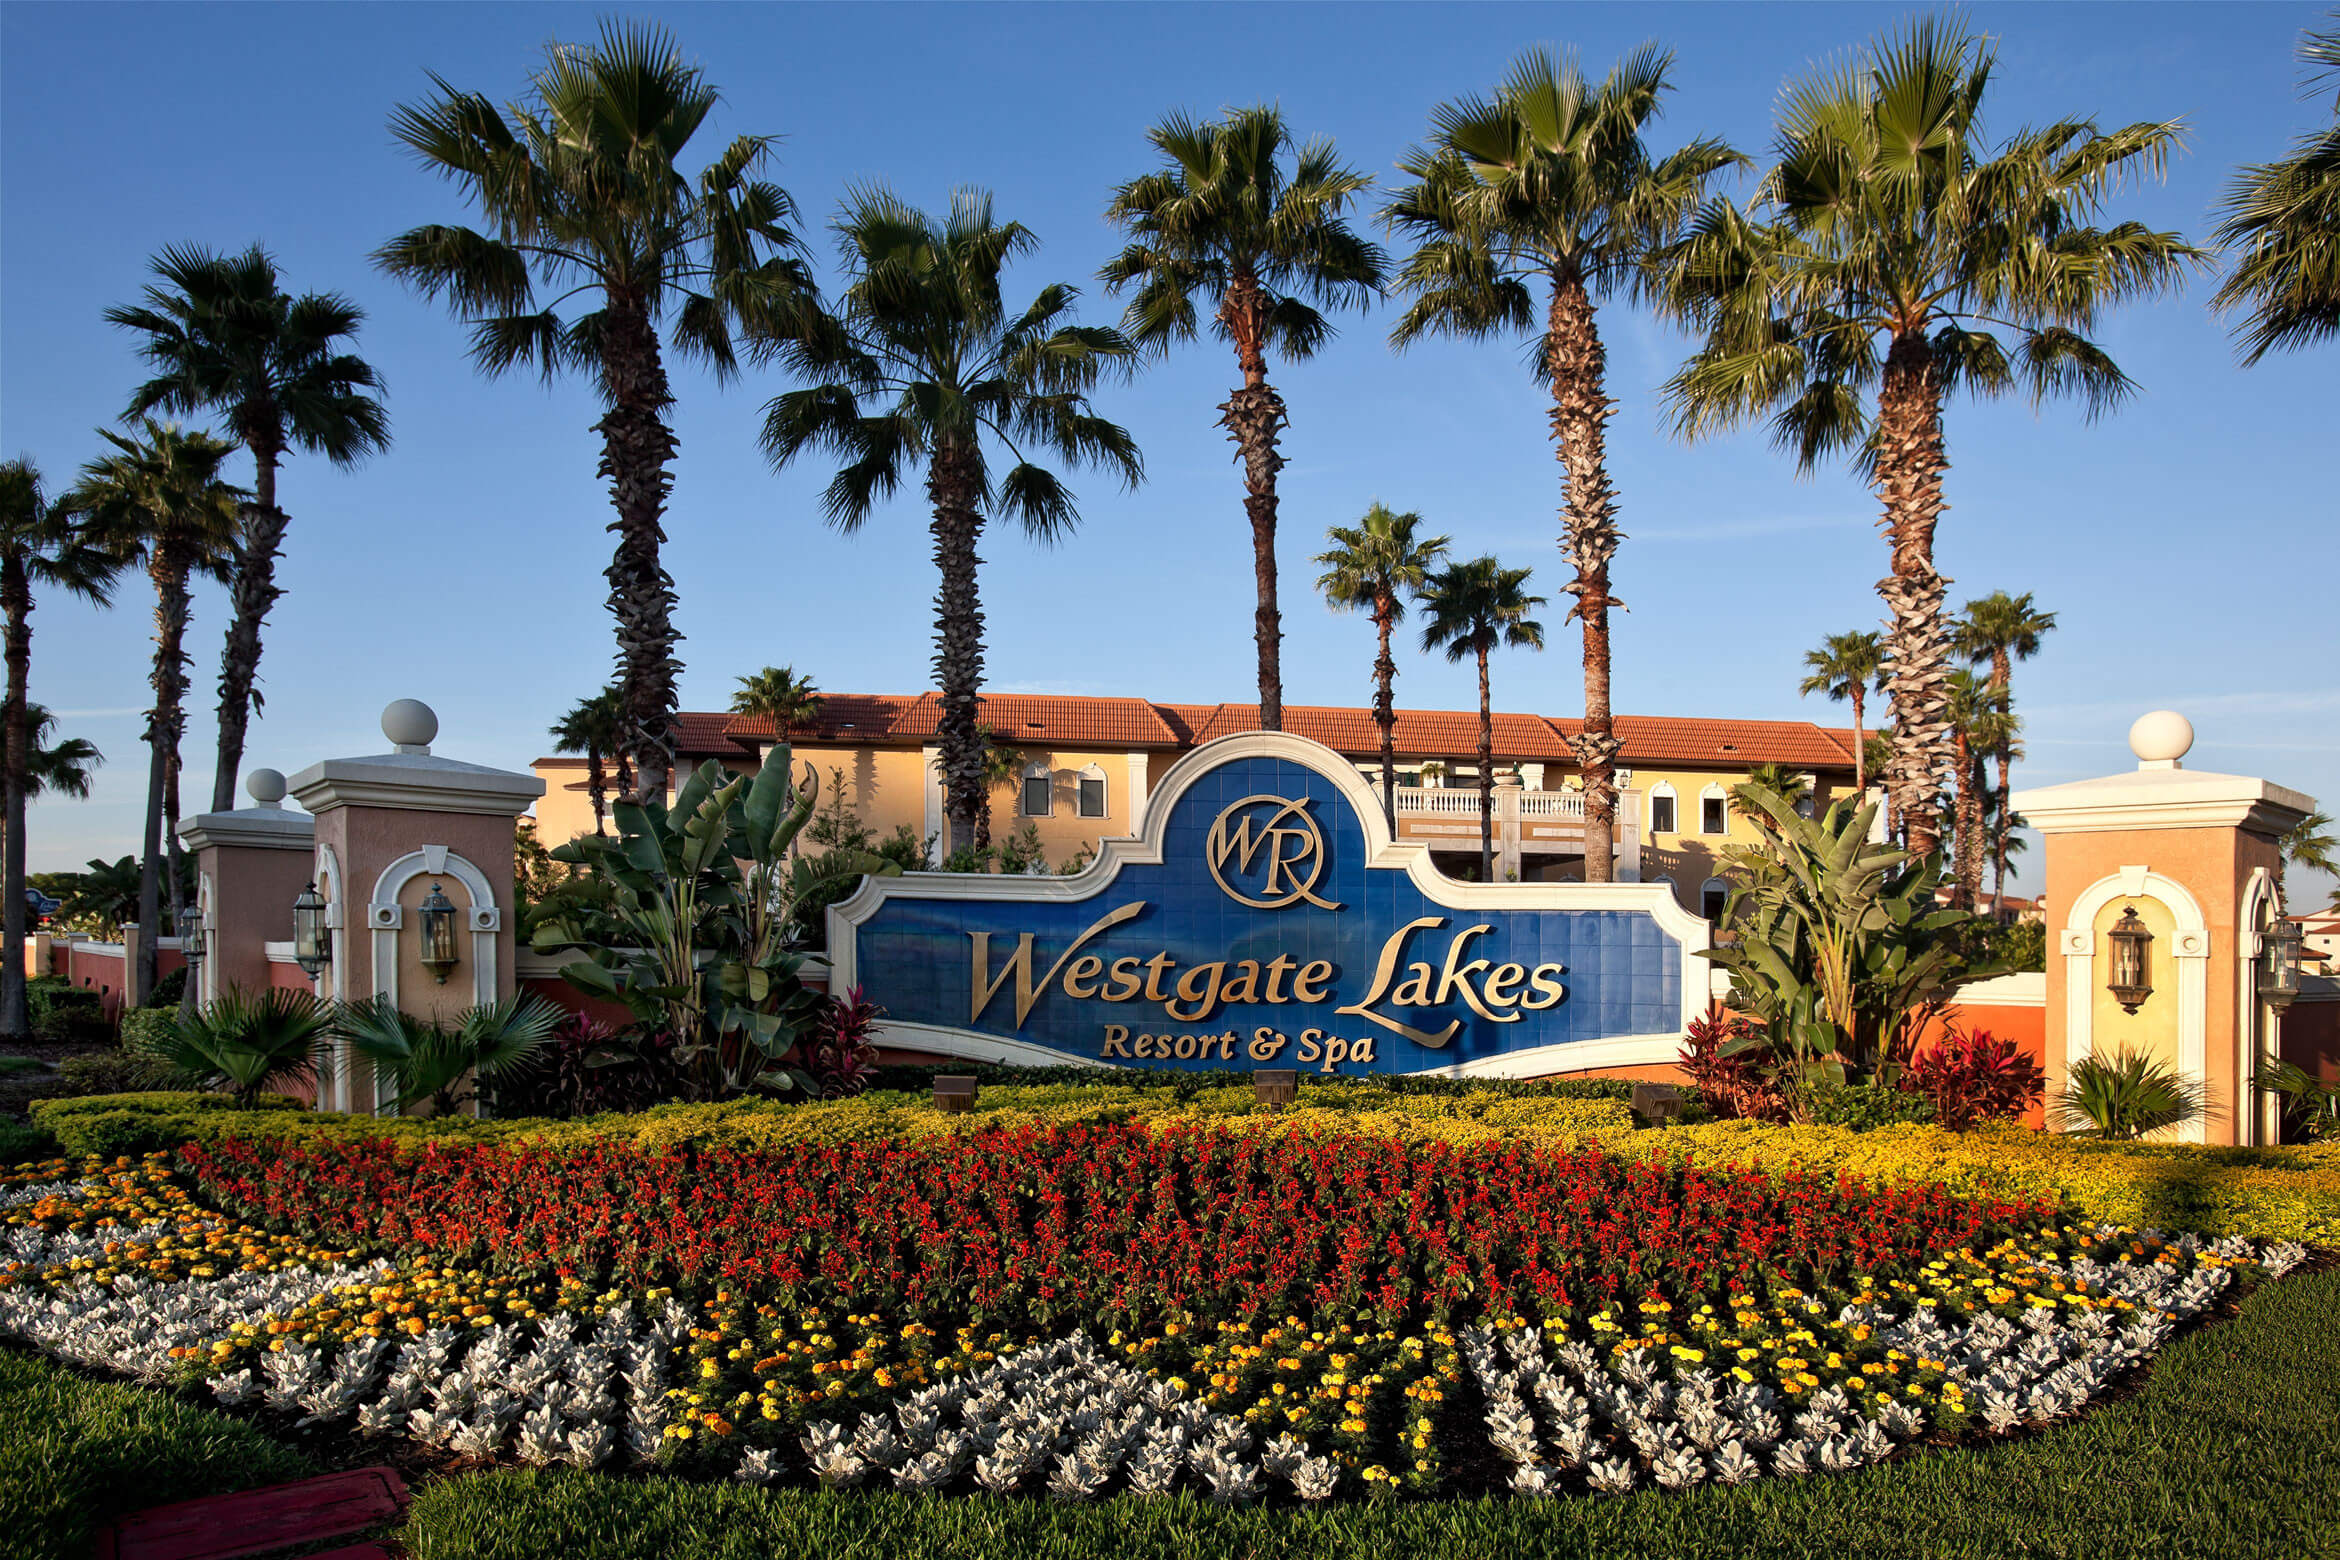 Entrance Sign and Flora | Westgate Lakes Resort & Spa | Orlando, FL | Westgate Resorts